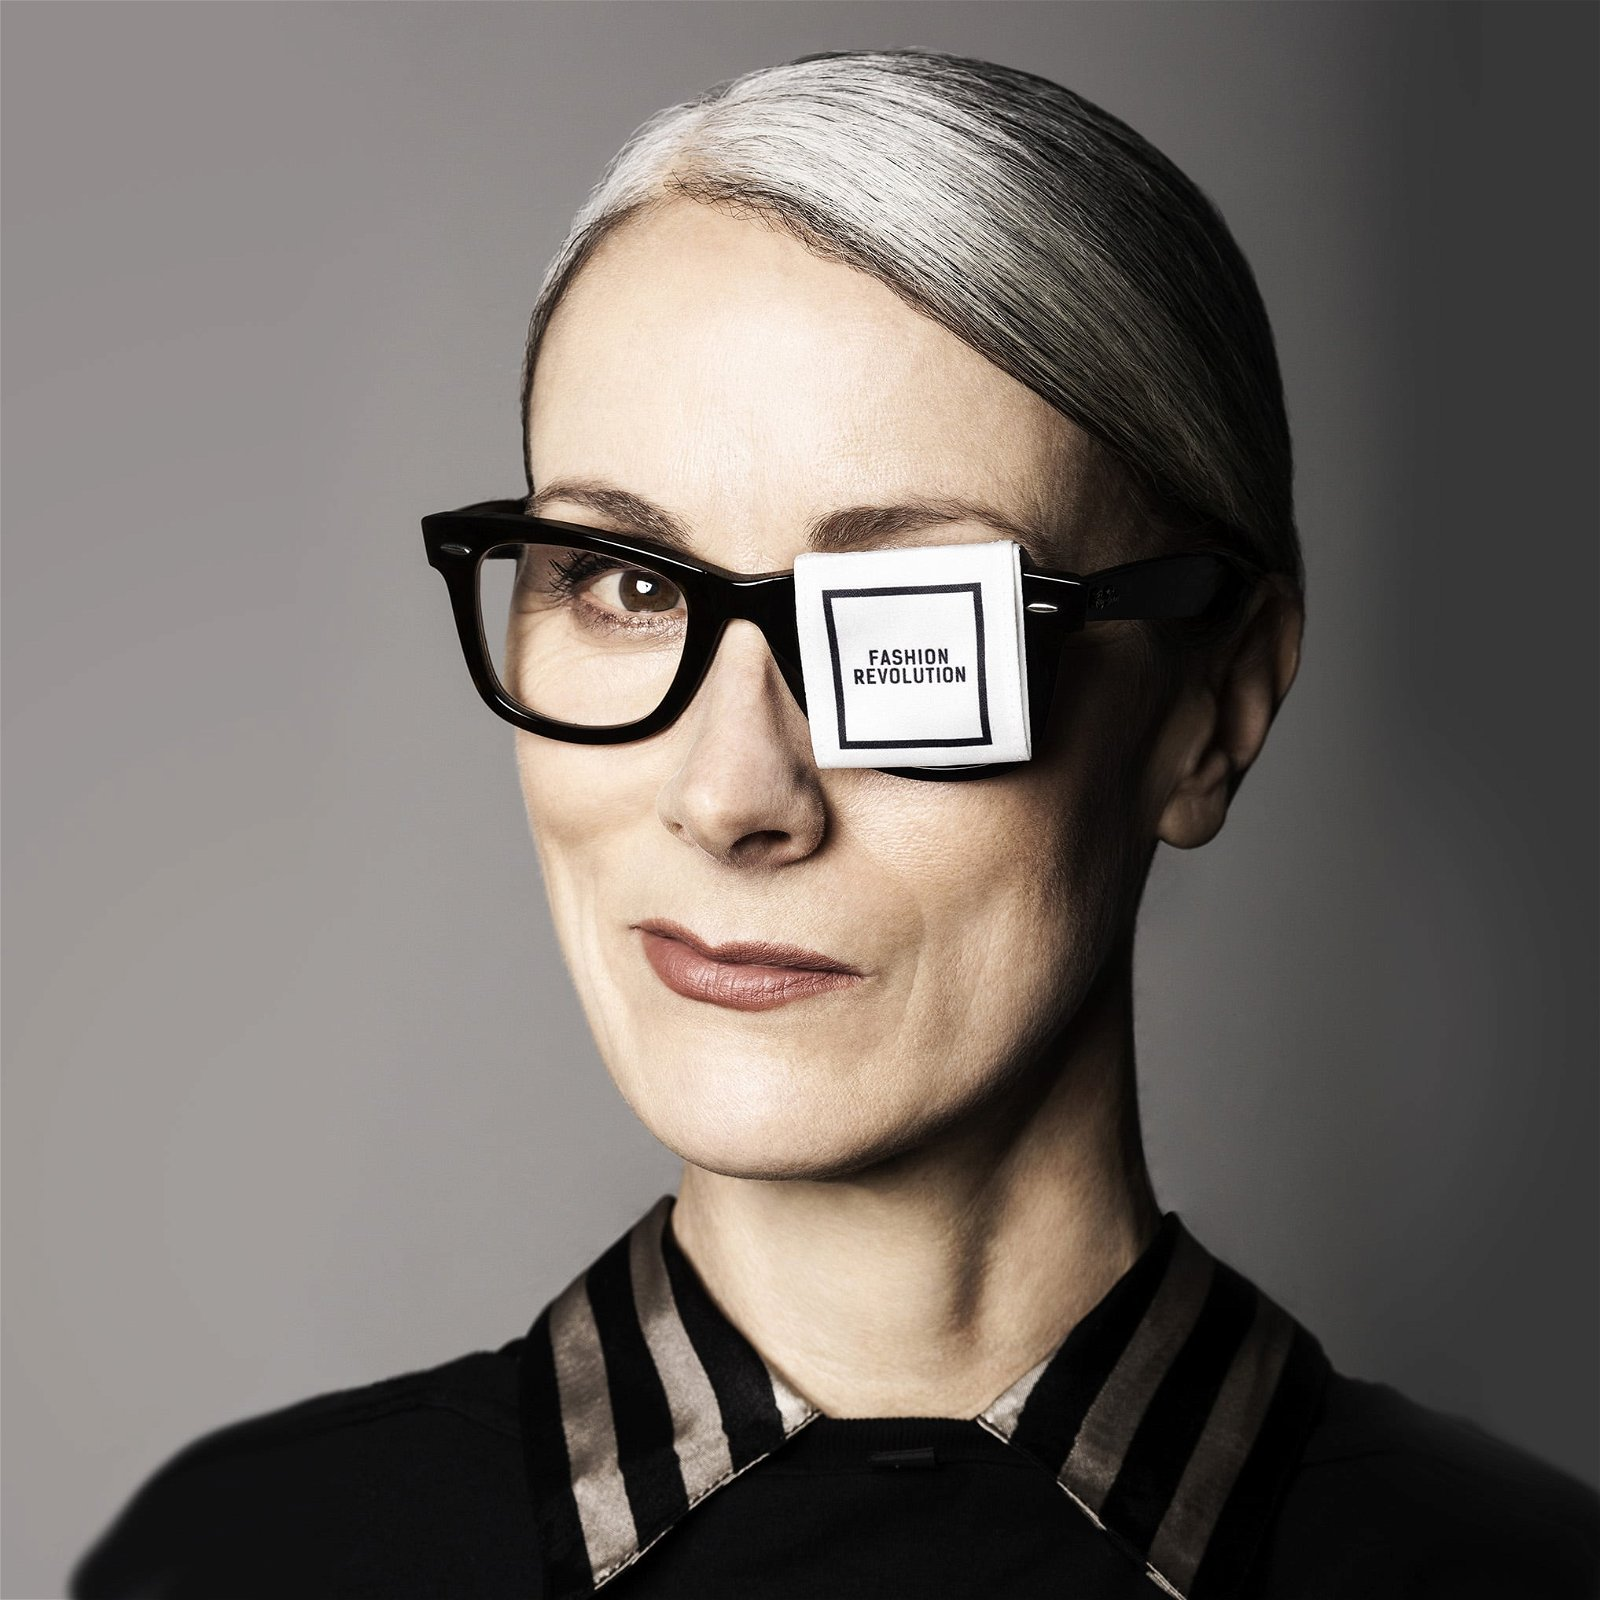 Caryn-Franklin-MBE-fashion-style-expert-speaker-at-Great-British-Speakers